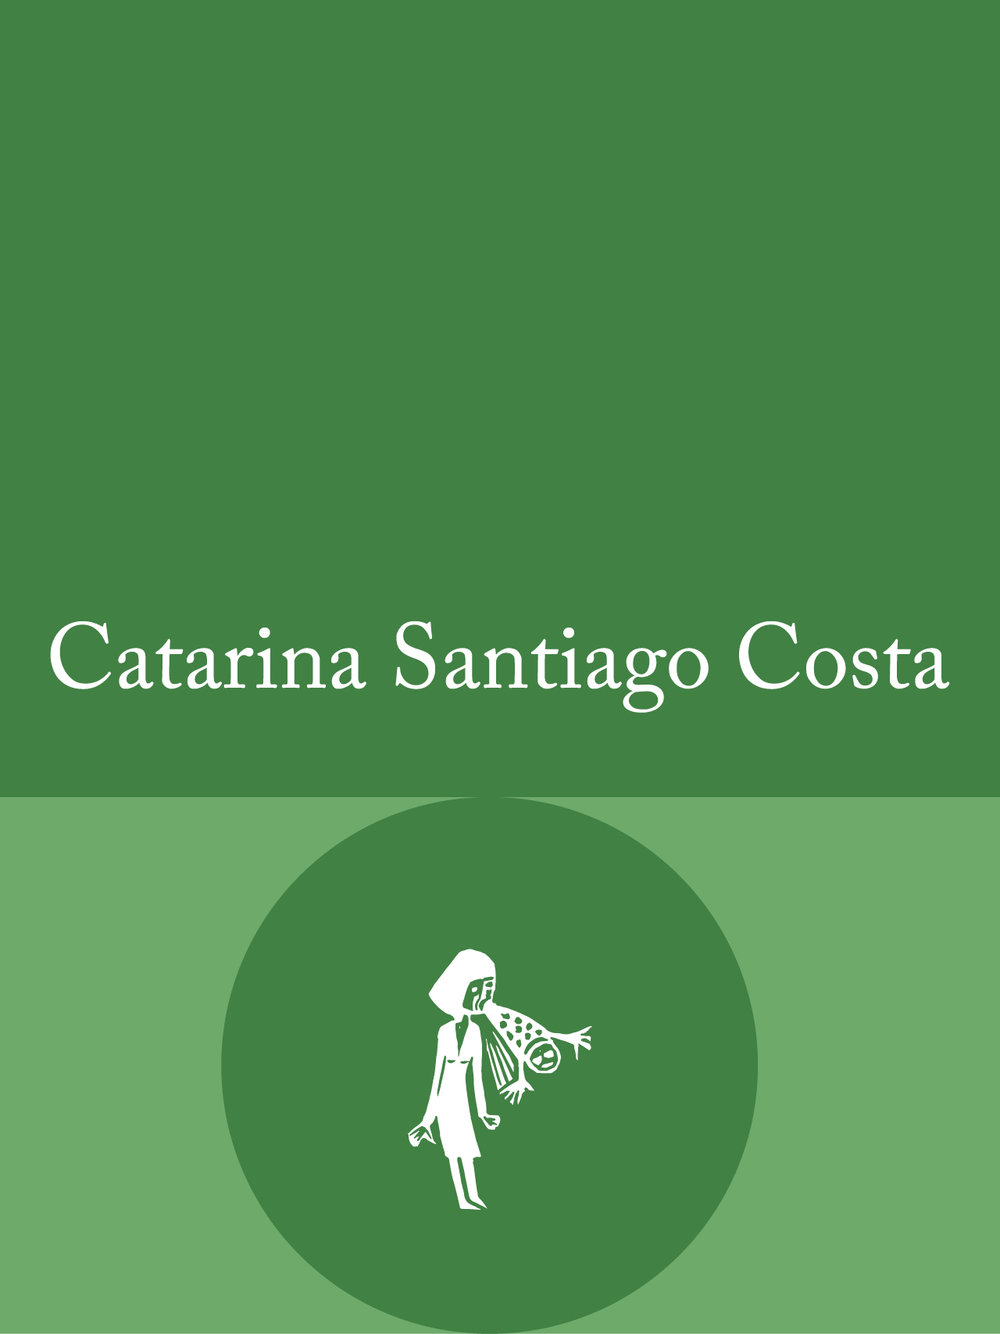 CatarinaSCosta.jpg